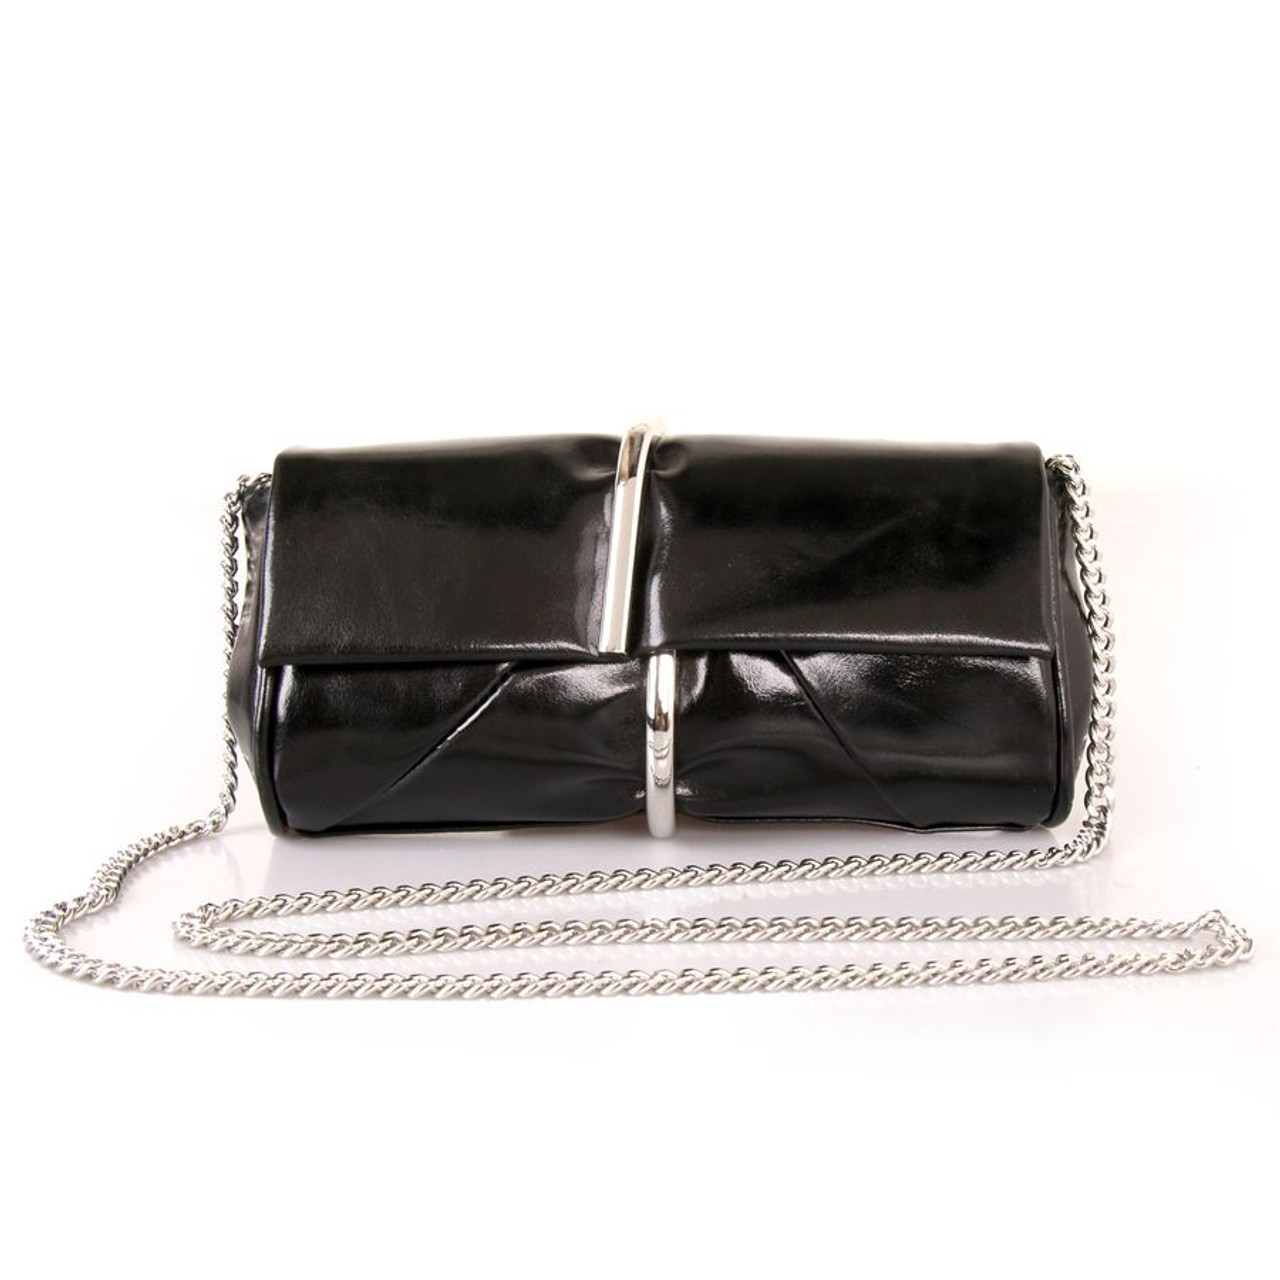 3bb246631ad Red Cuckoo Black Chain Clutch Bag - Itsy Bitsy Boutique